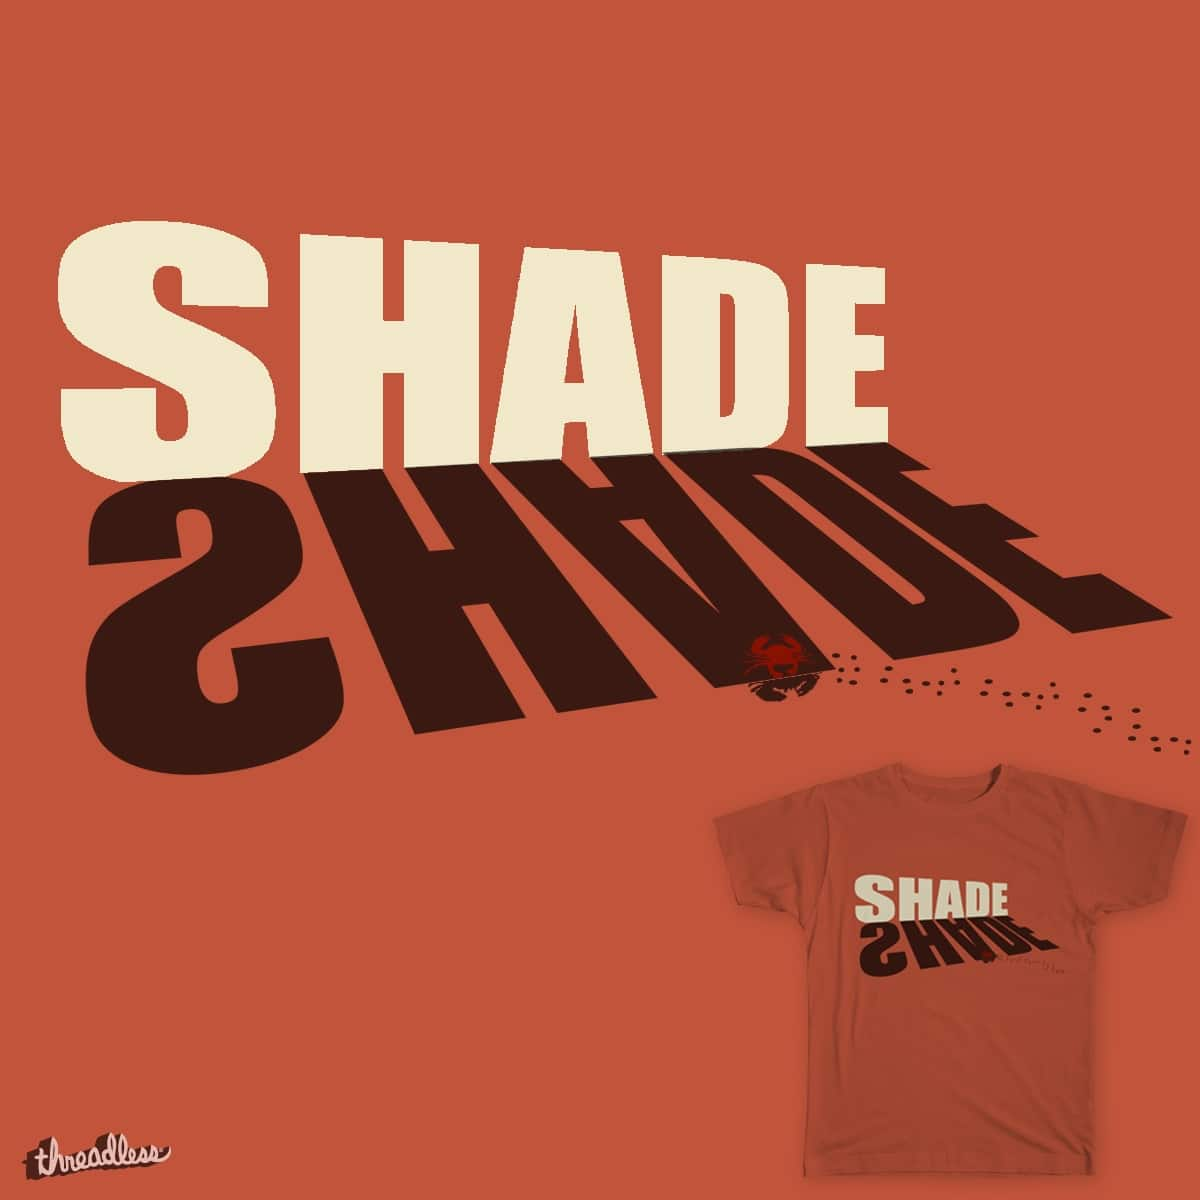 Shade by helenfoti on Threadless